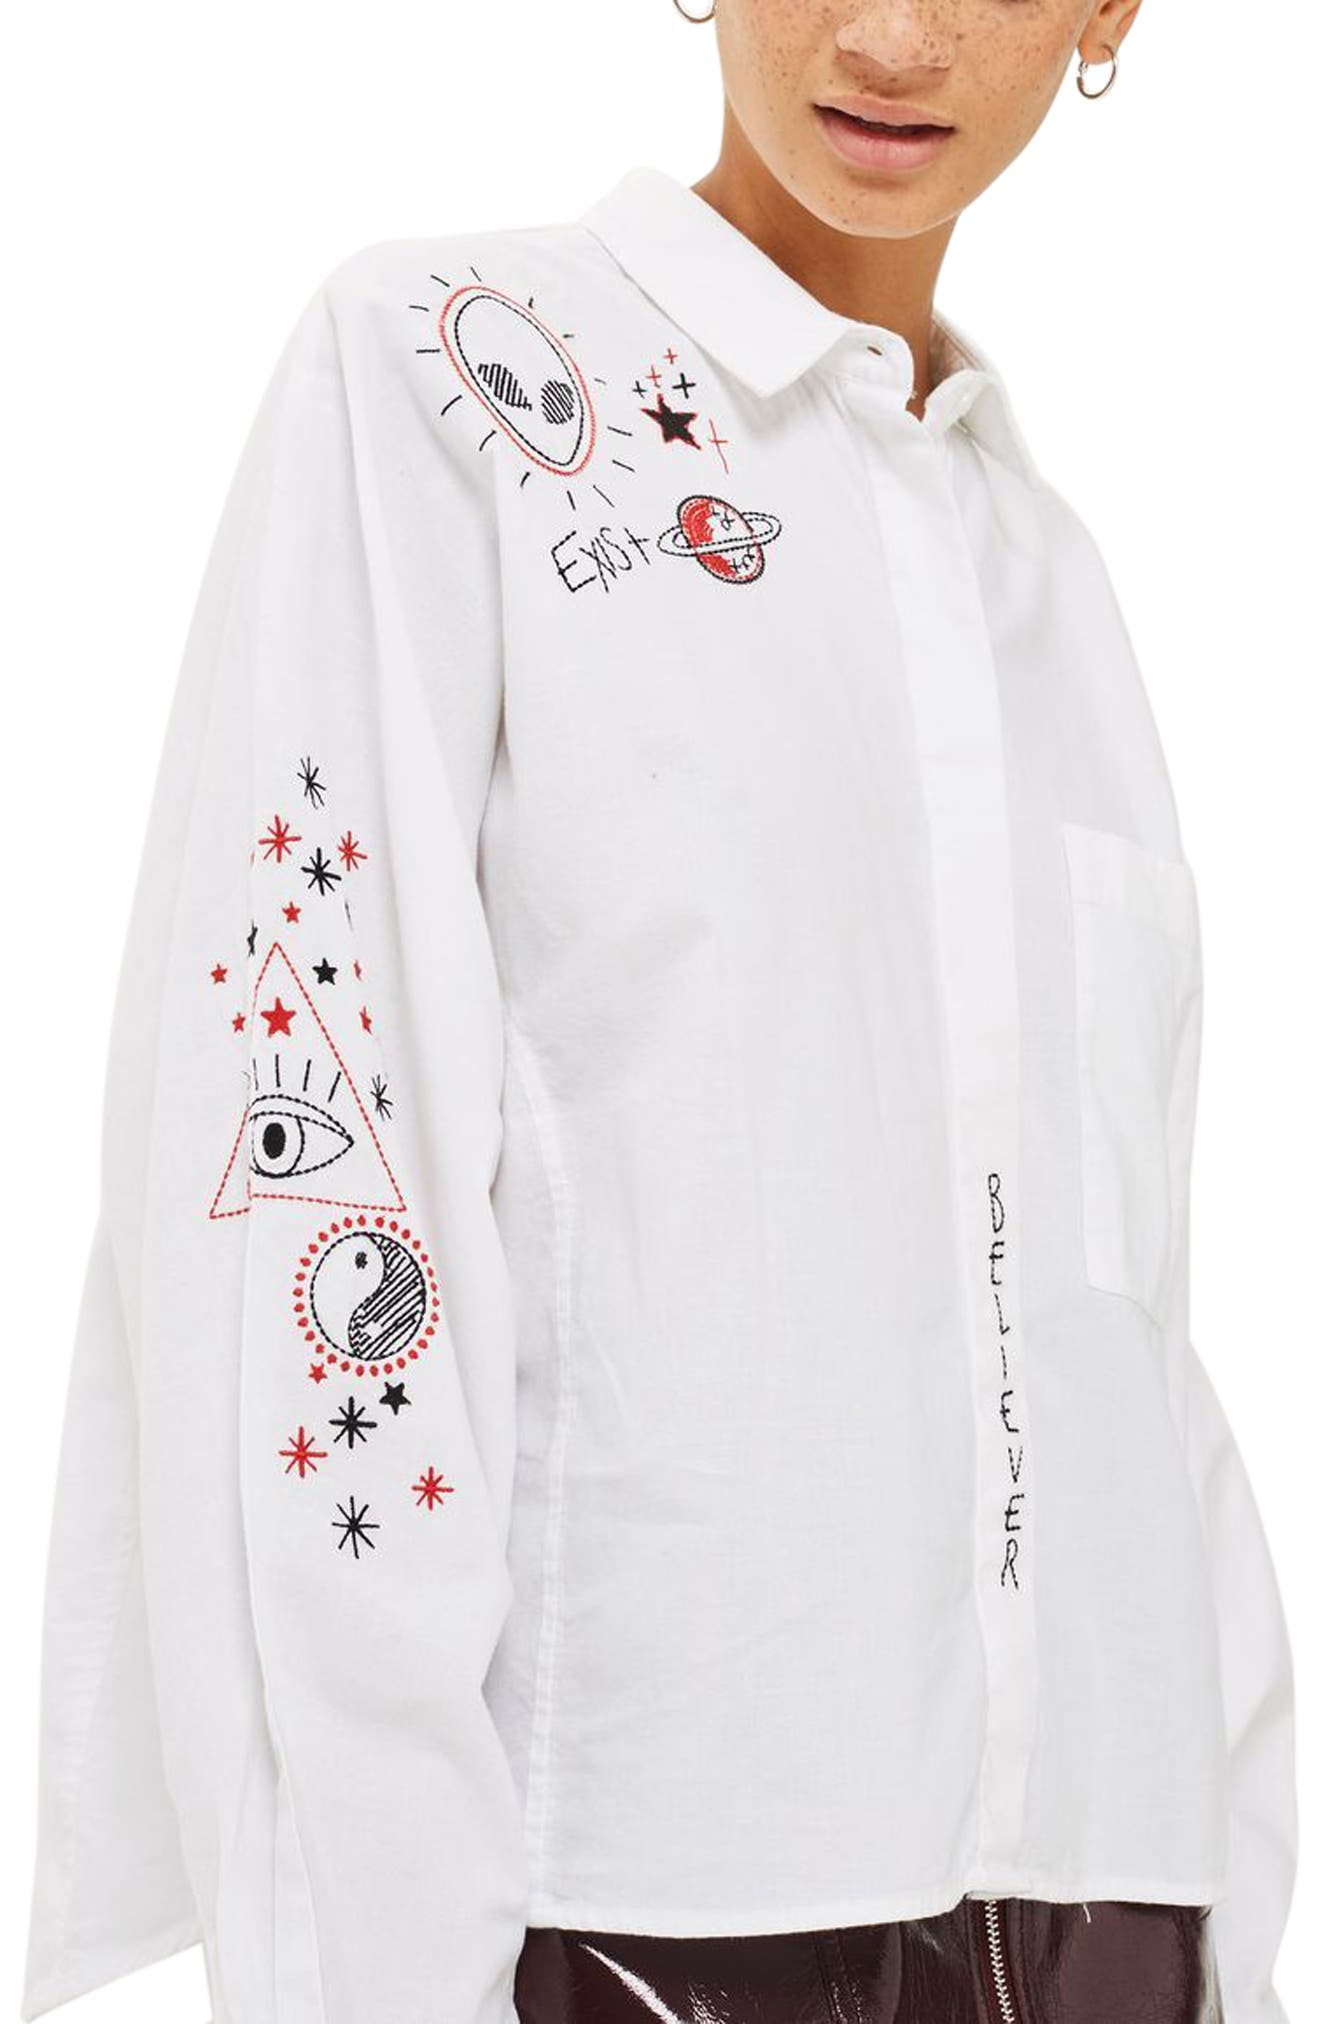 Doodle Believer Embroidered Shirt,                         Main,                         color, 900